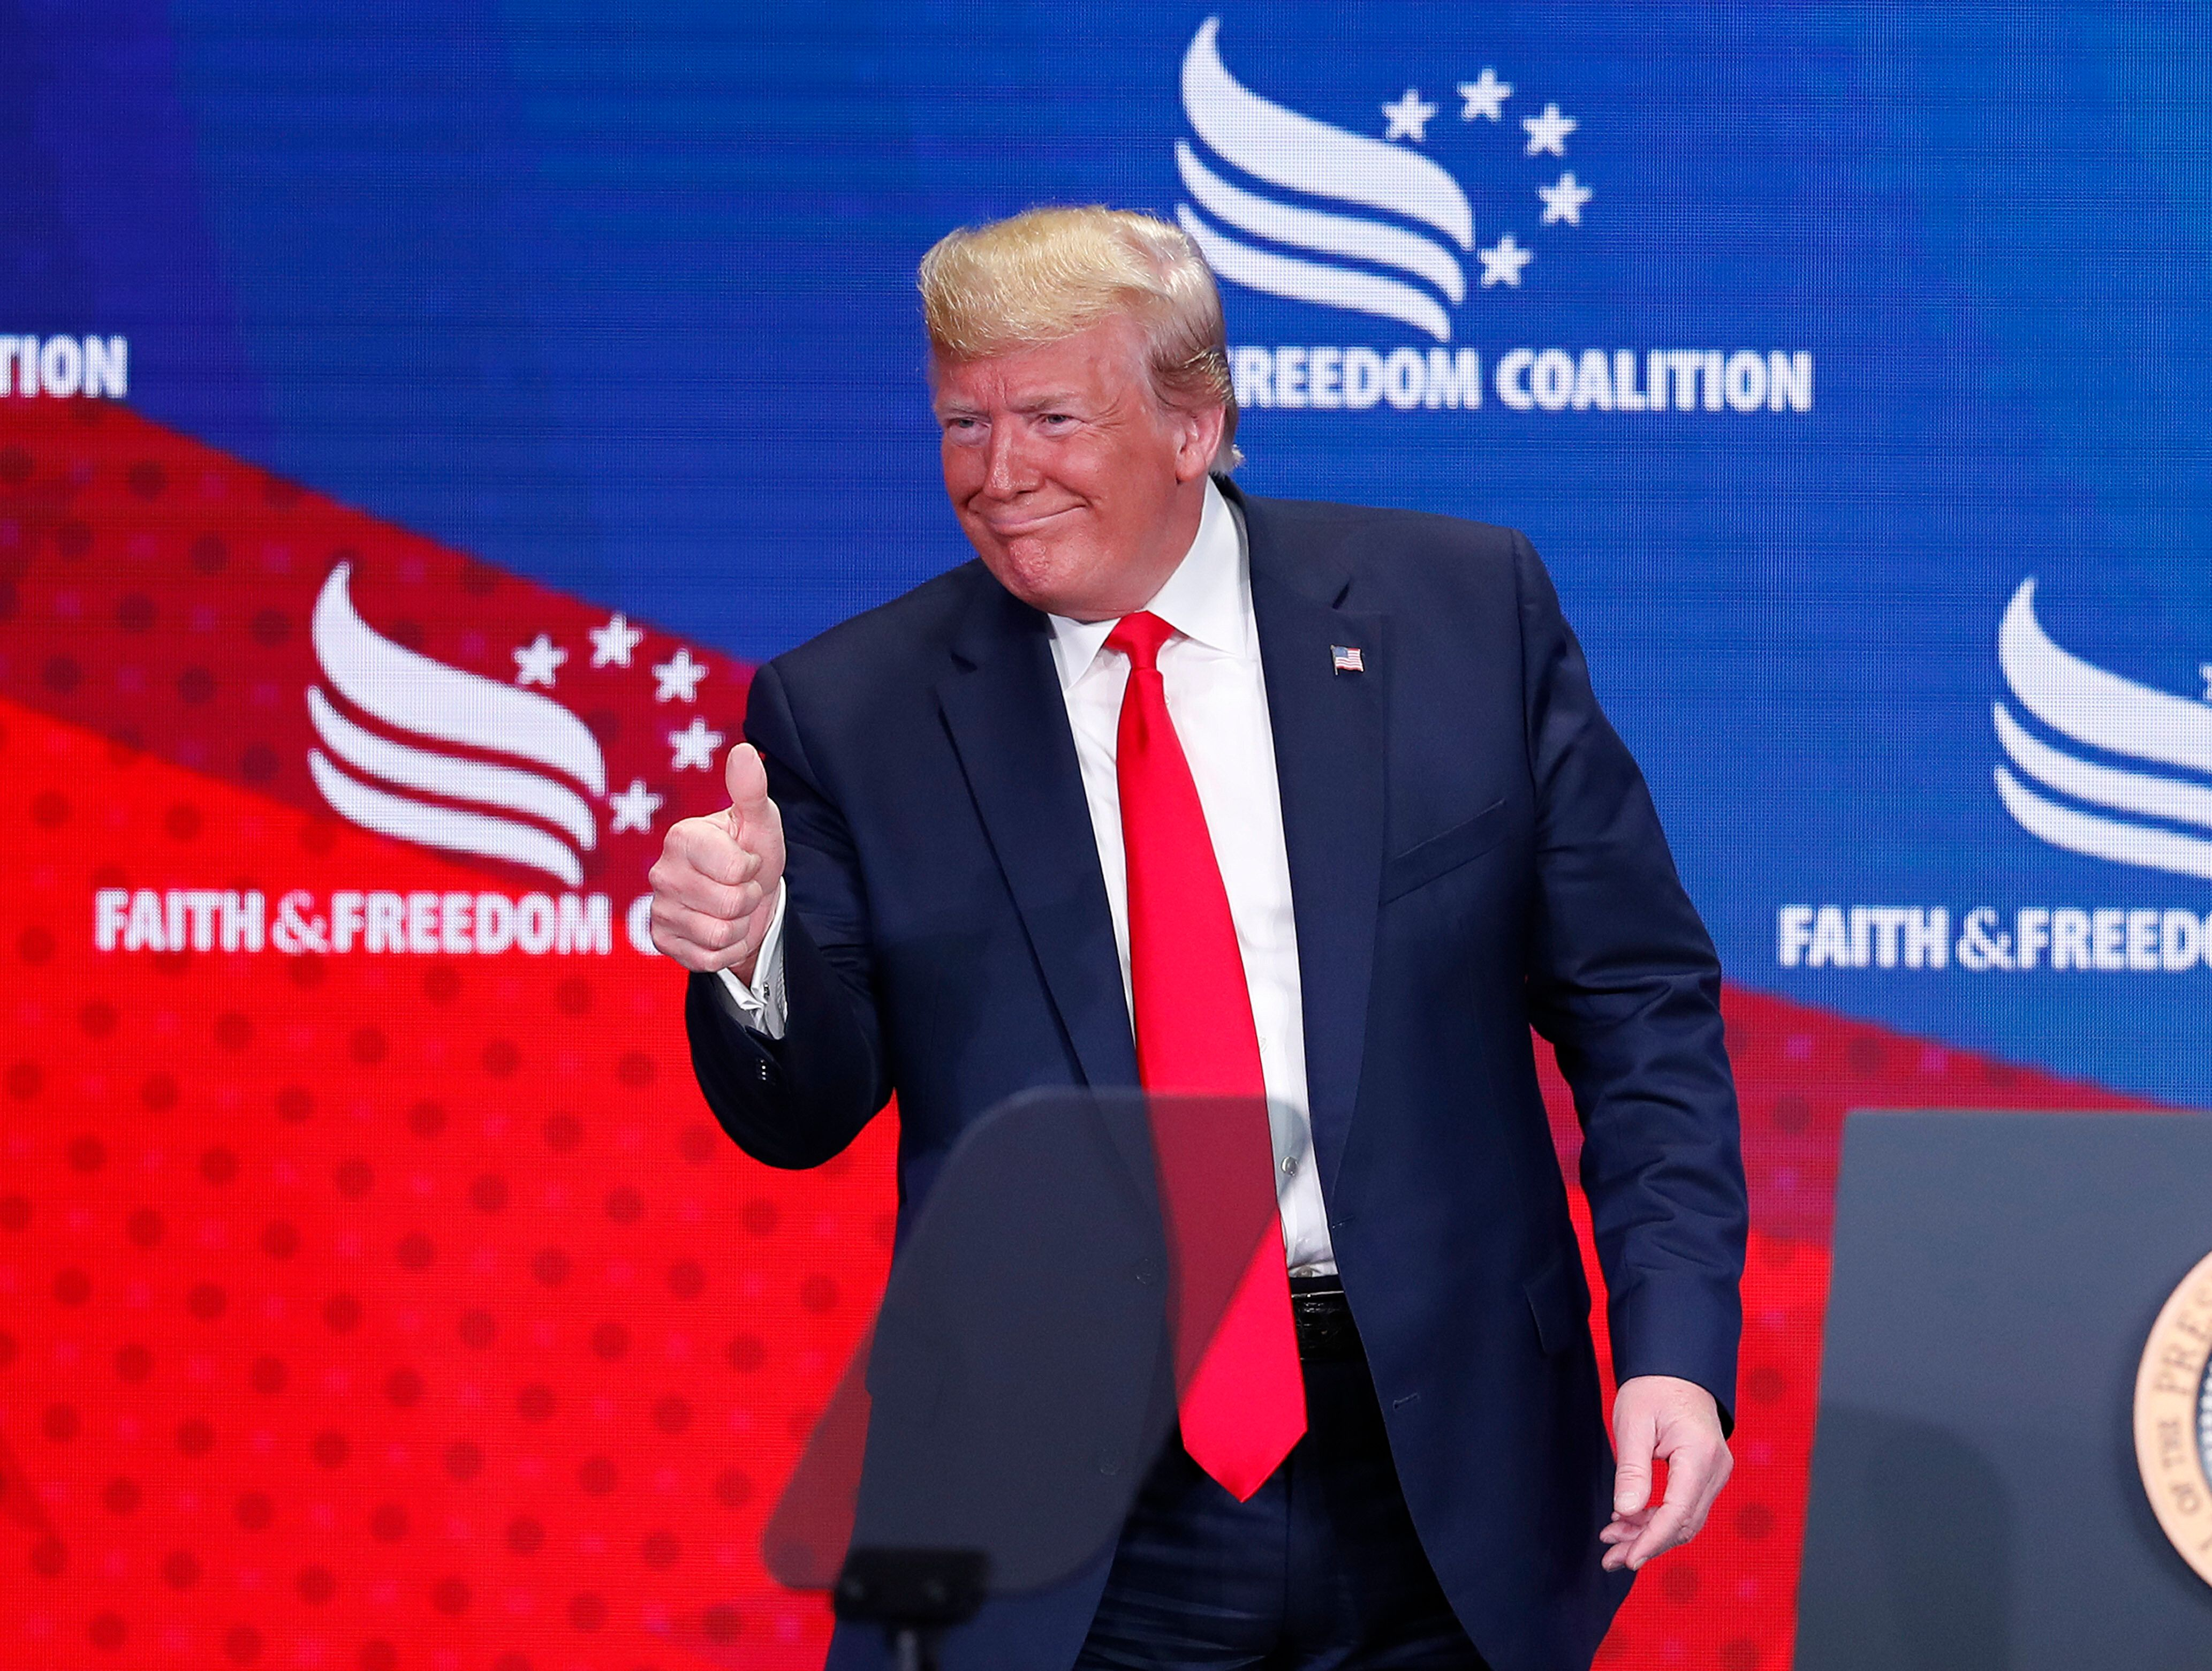 President Donald Trump gestures after speaking at the Faith & Freedom Coalition conference in Washington, Wednesday, June